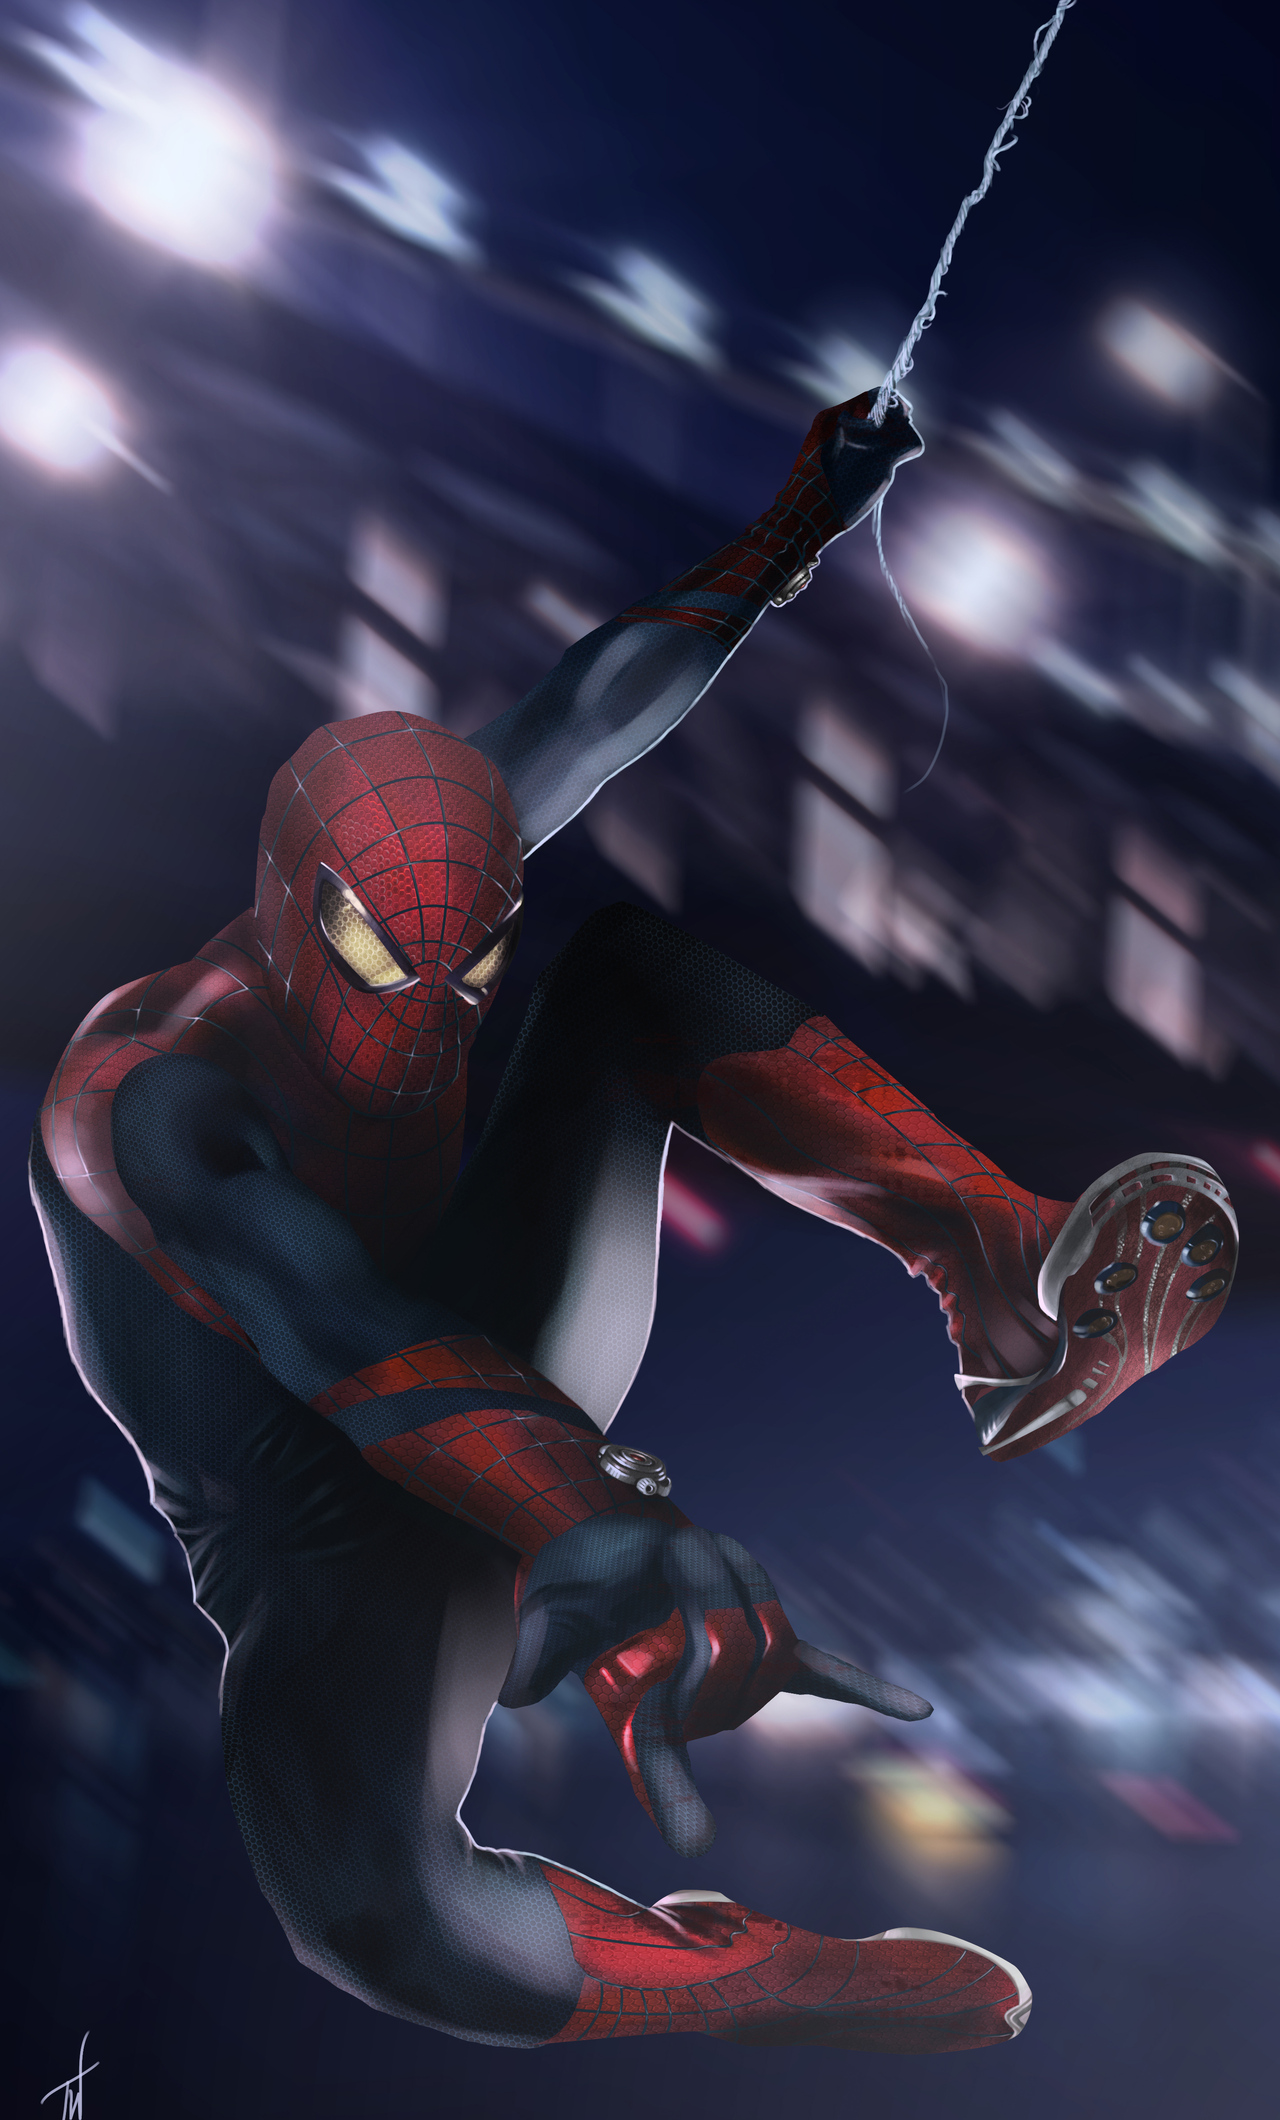 1280x2120 Amazing Spider Man Iphone 6 Hd 4k Wallpapers Images